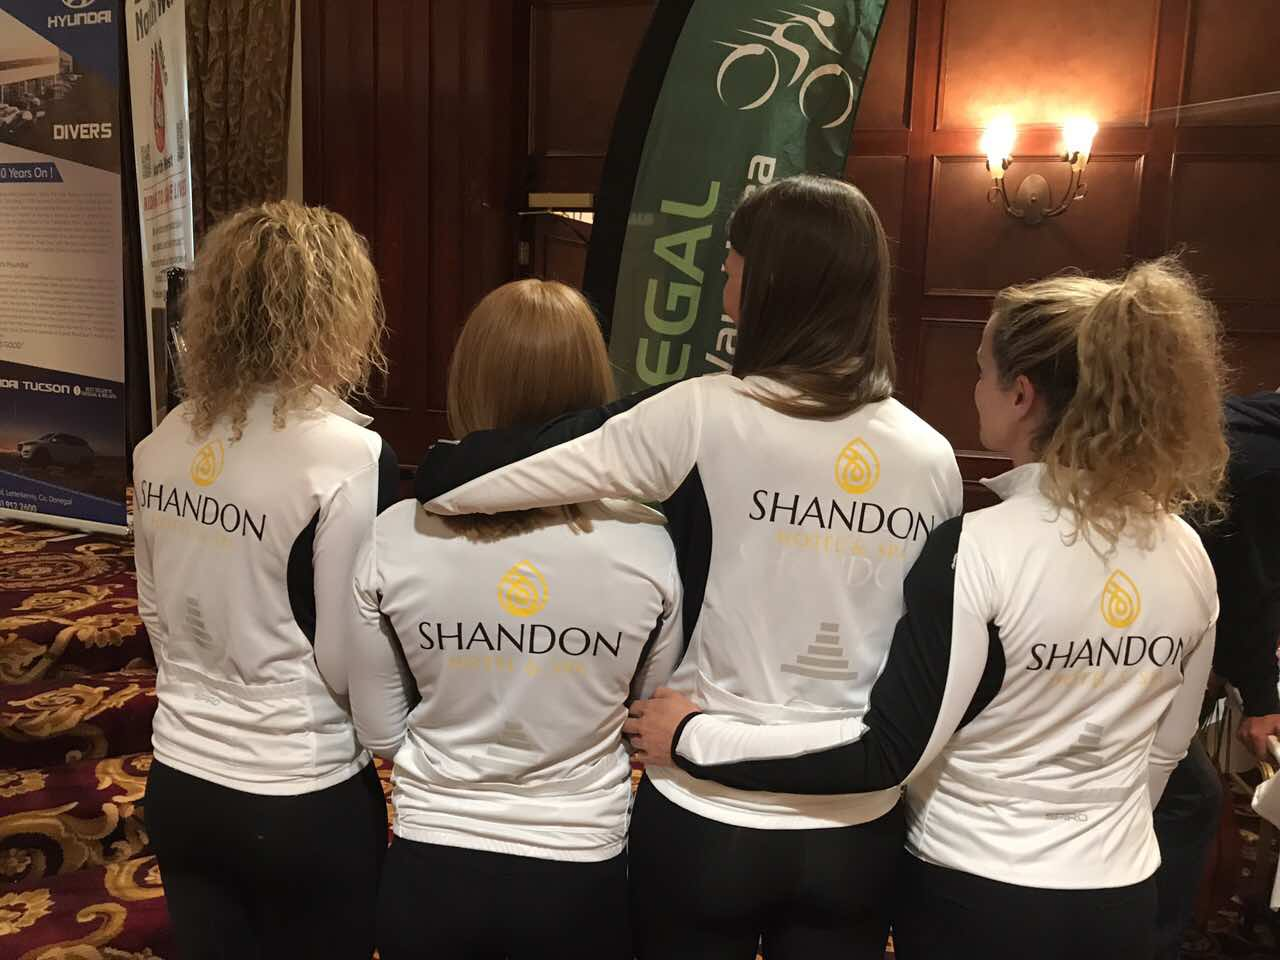 Shandon's Team Tri Quads Wins Overall Ladies Team At Donegal Ultra!